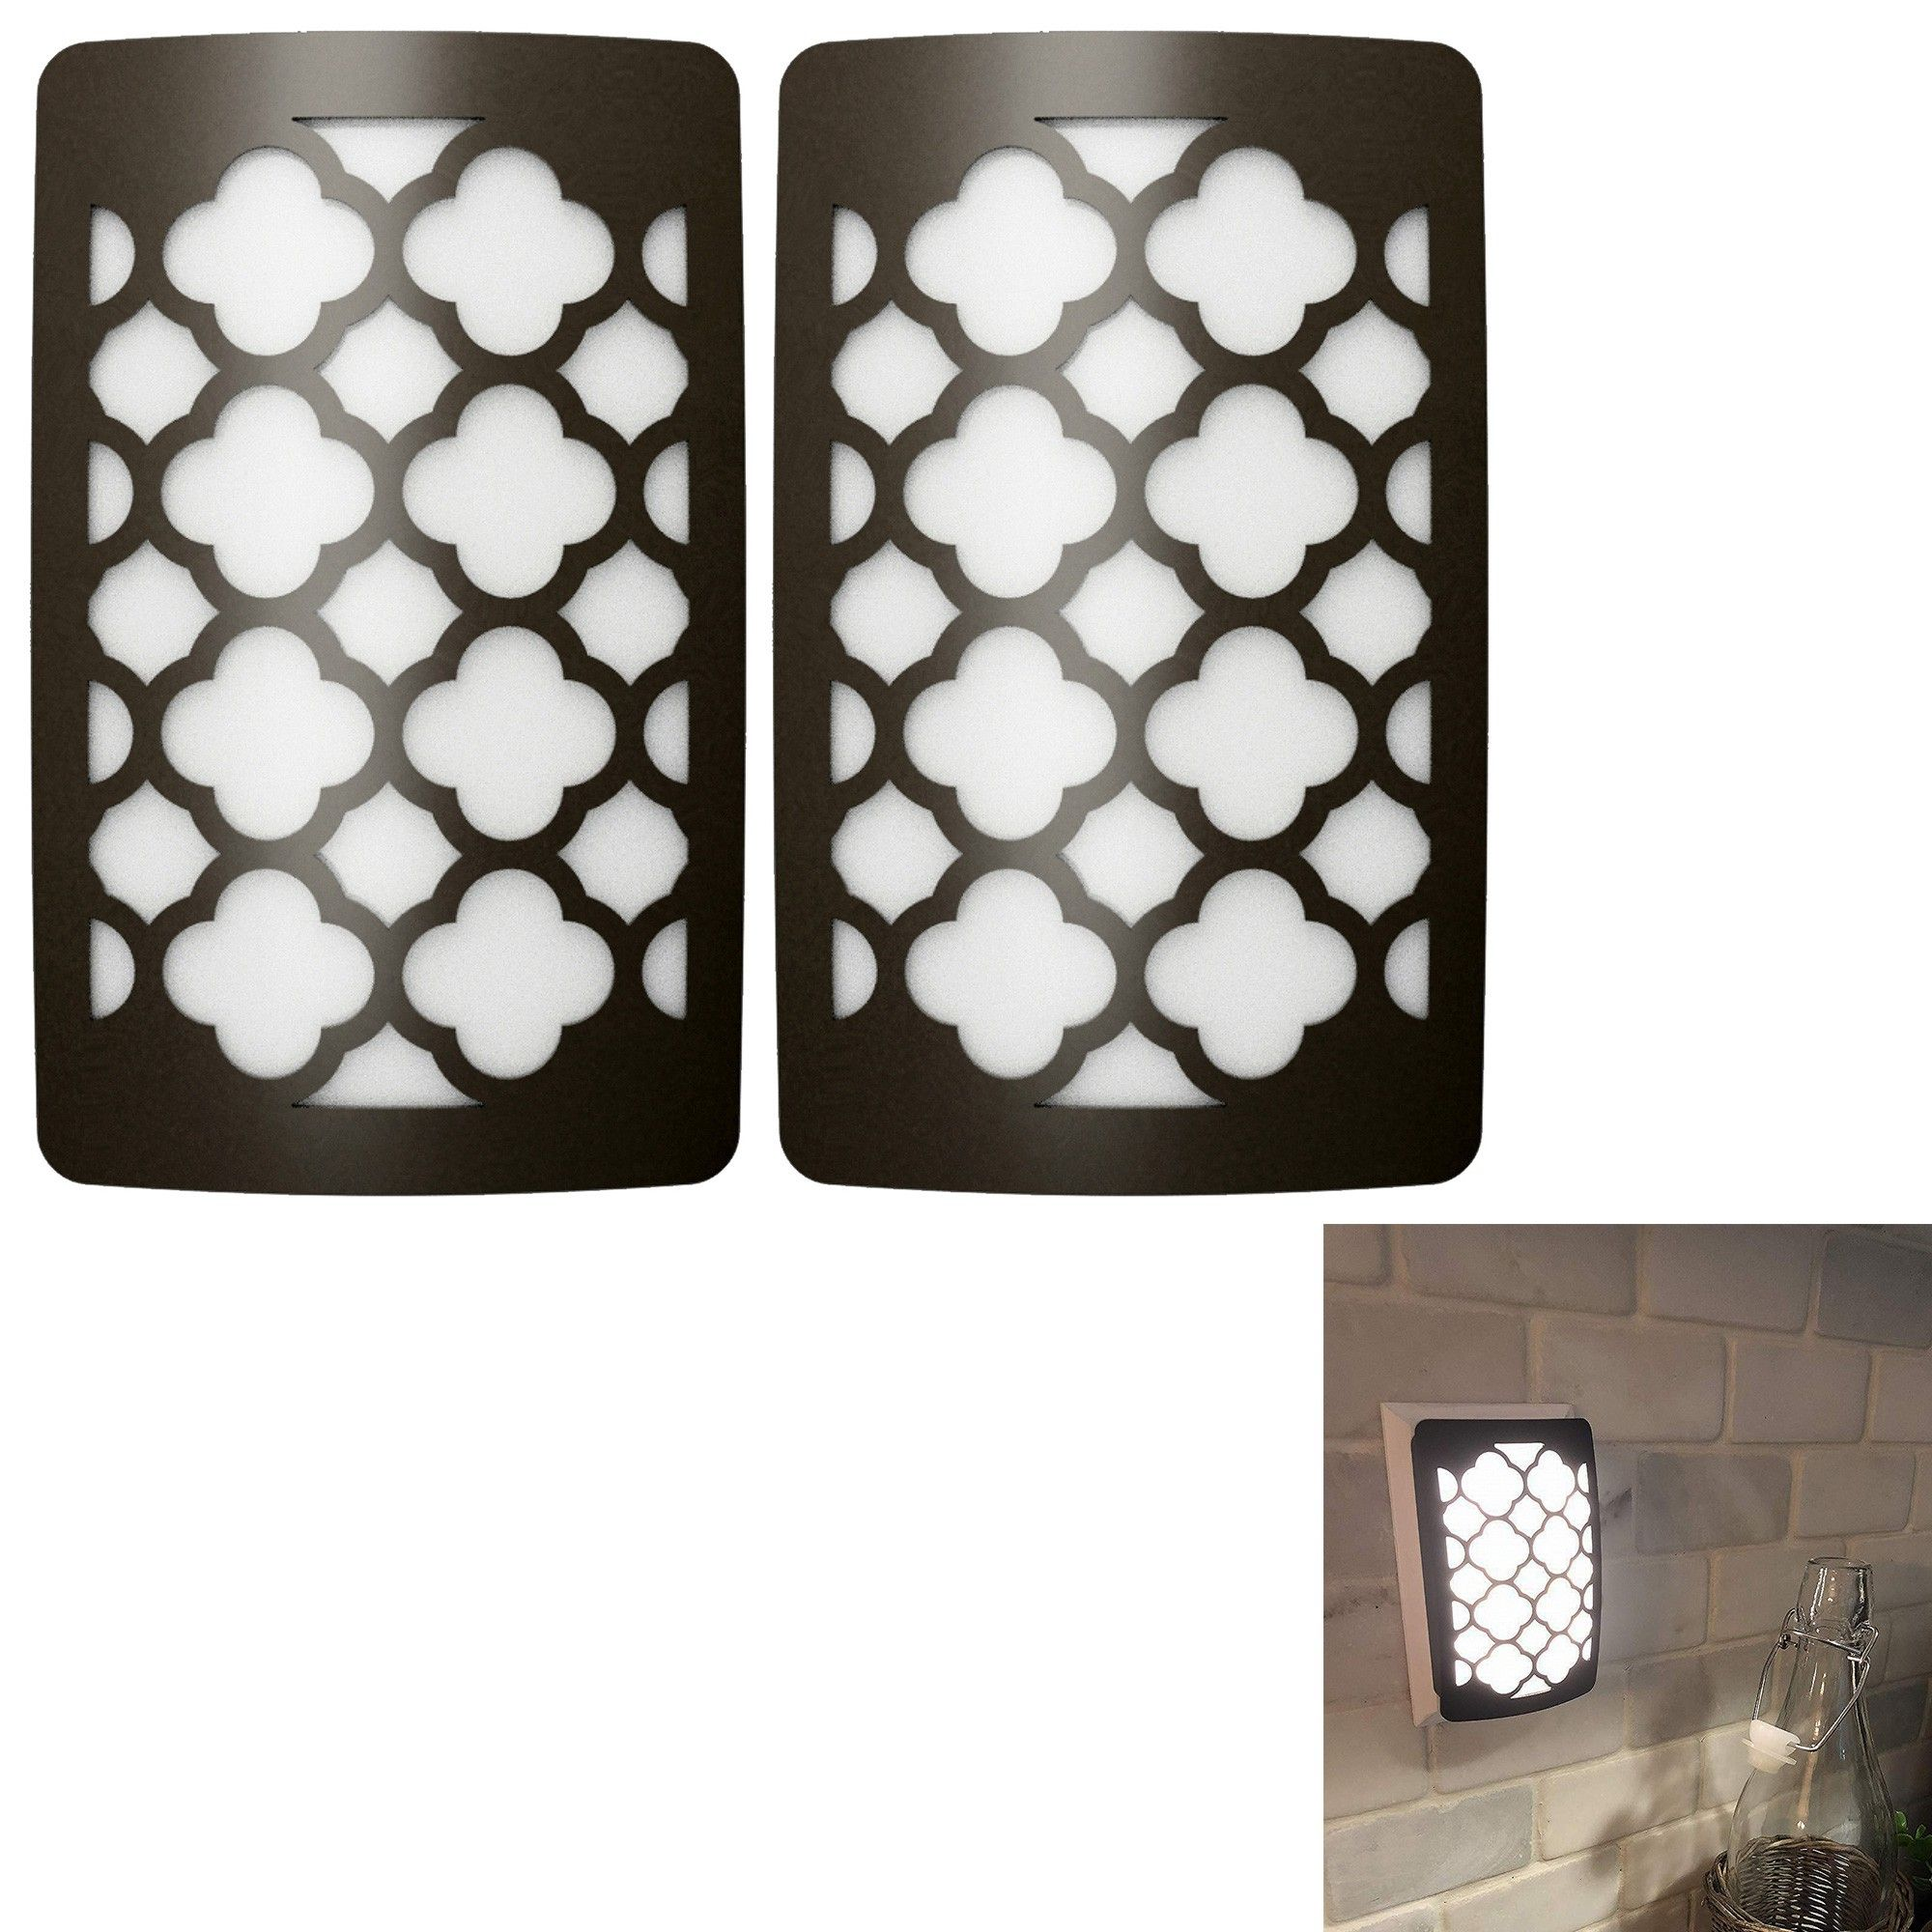 Pack Of 2 Decor Lights W// Lux Sensor For Dusk-To-Dawn illumination